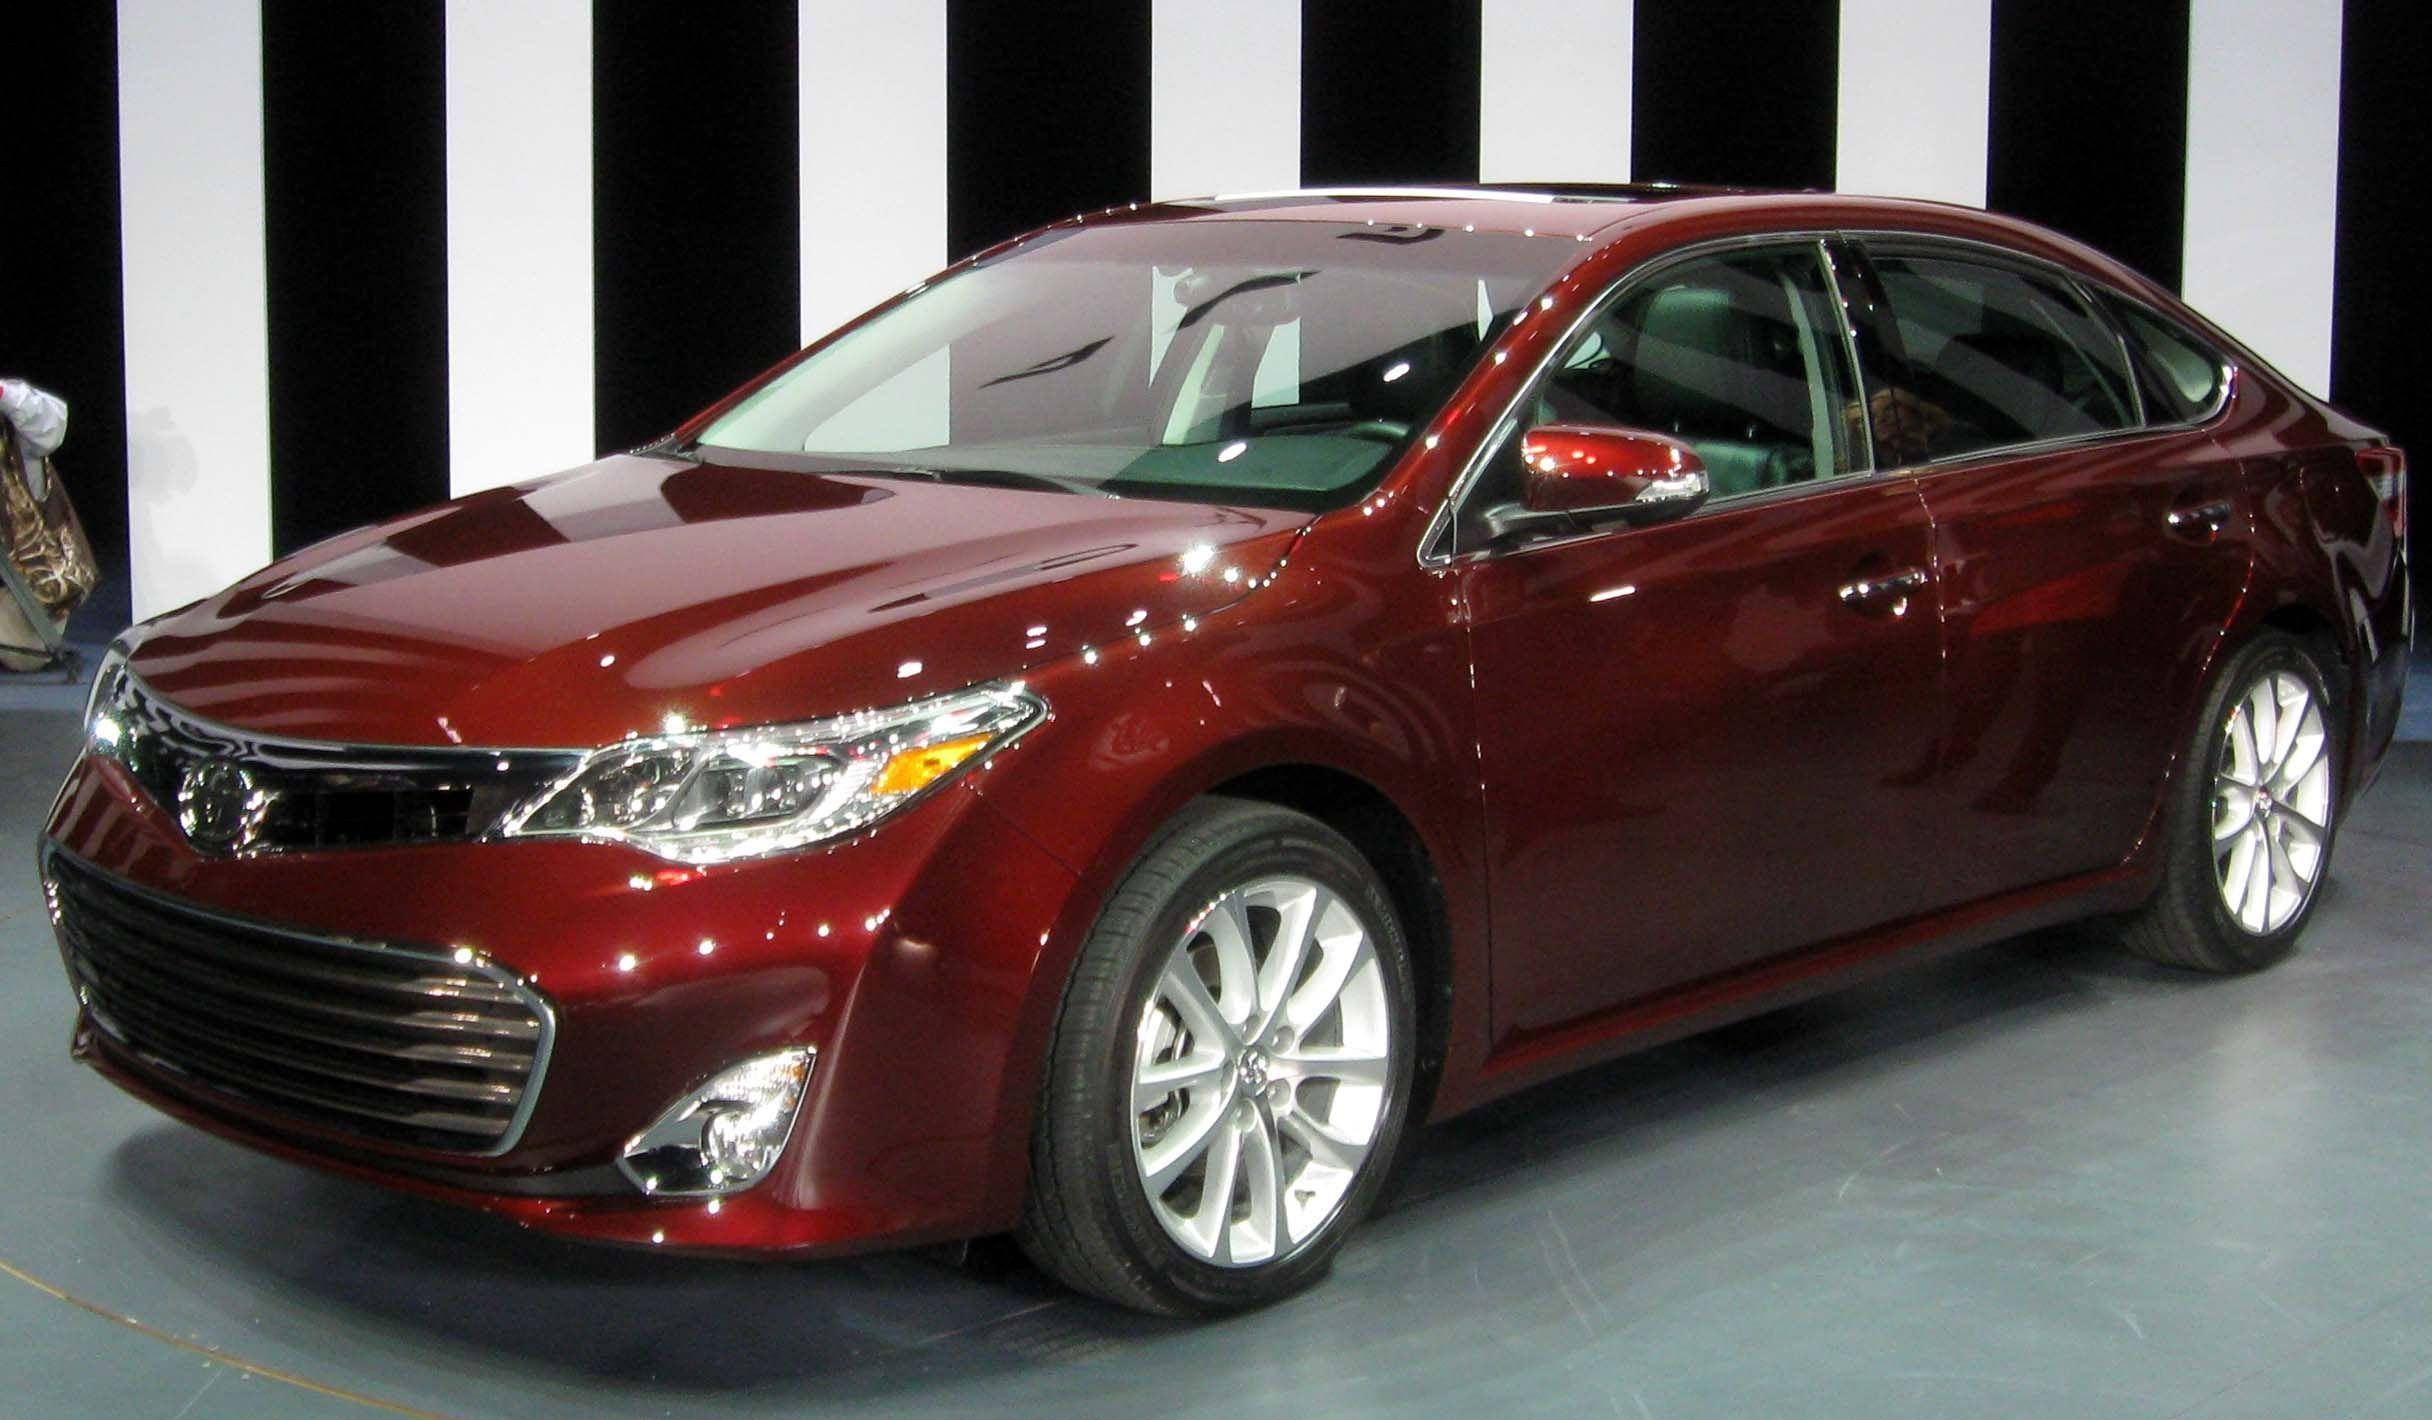 28 best toyota avalon images on pinterest toyota avalon toyota cars and cars